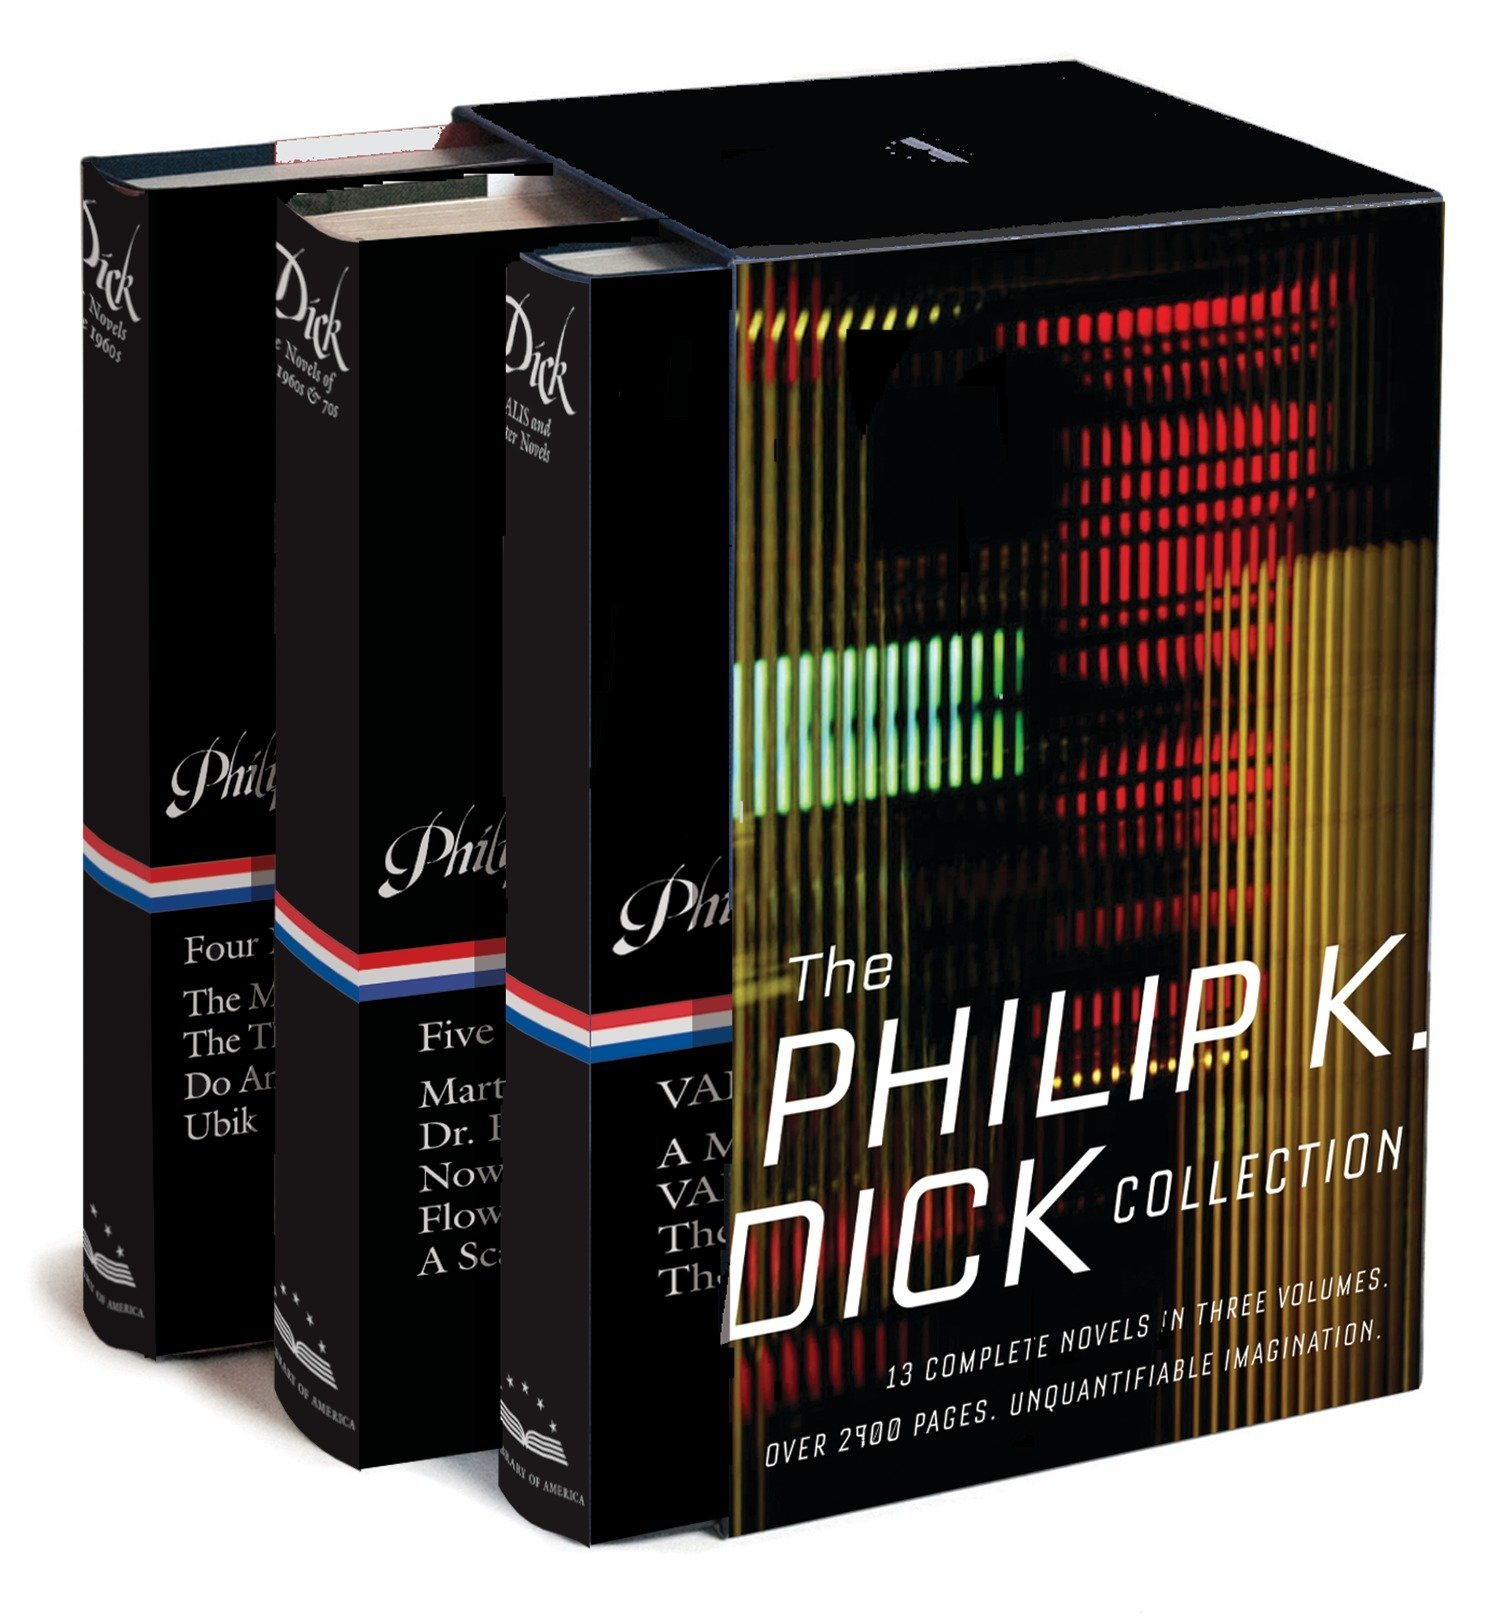 Collection dick k philip